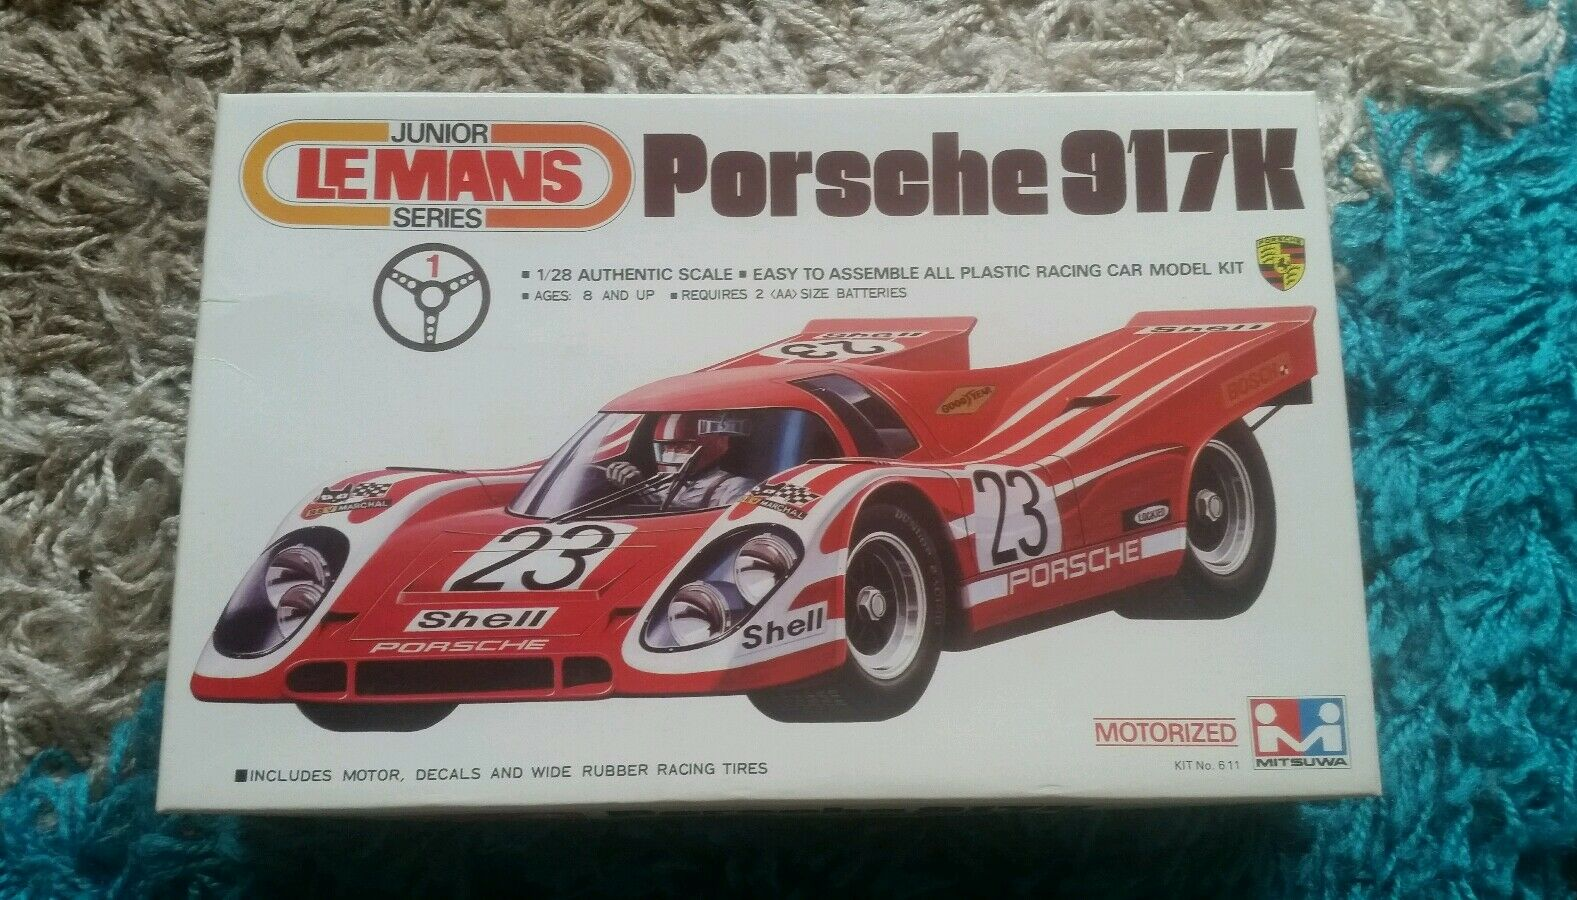 Mitsuwa 1 28 Porsche 917K Le Mans Motorized Kit Great Condition Super Rare